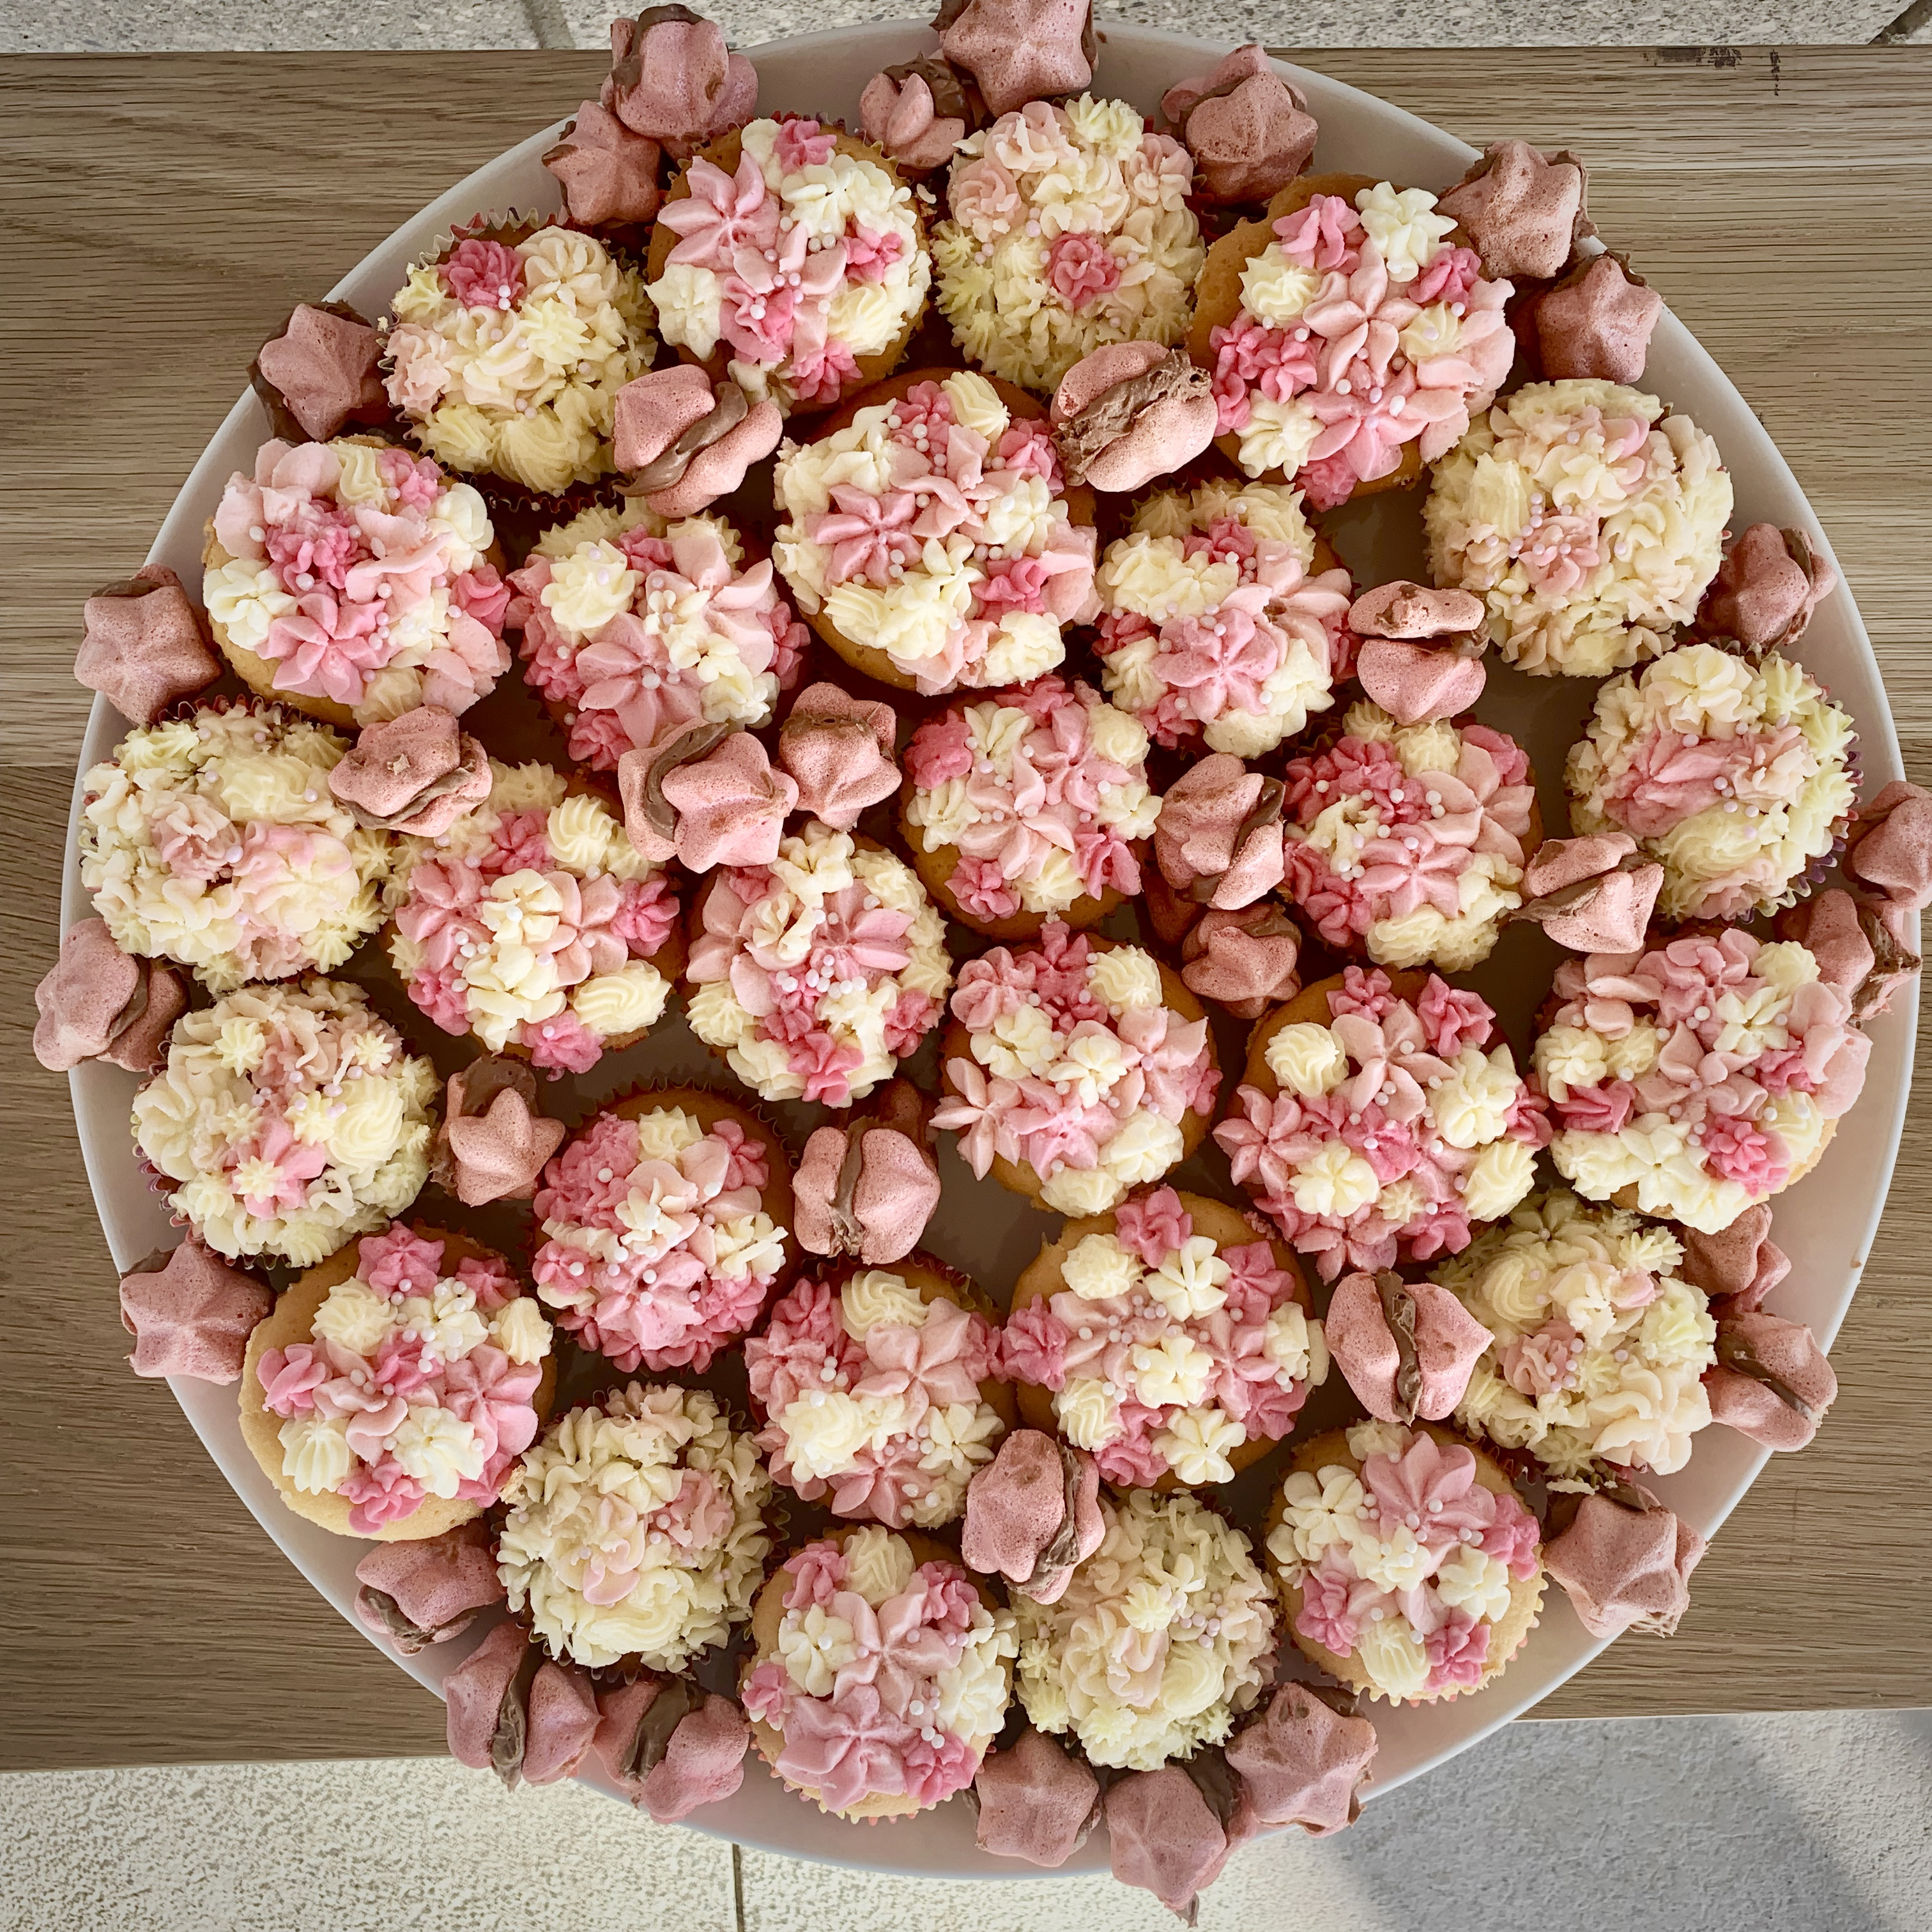 Cupcake Platter in pink and white for a fund raiser for breast cancer